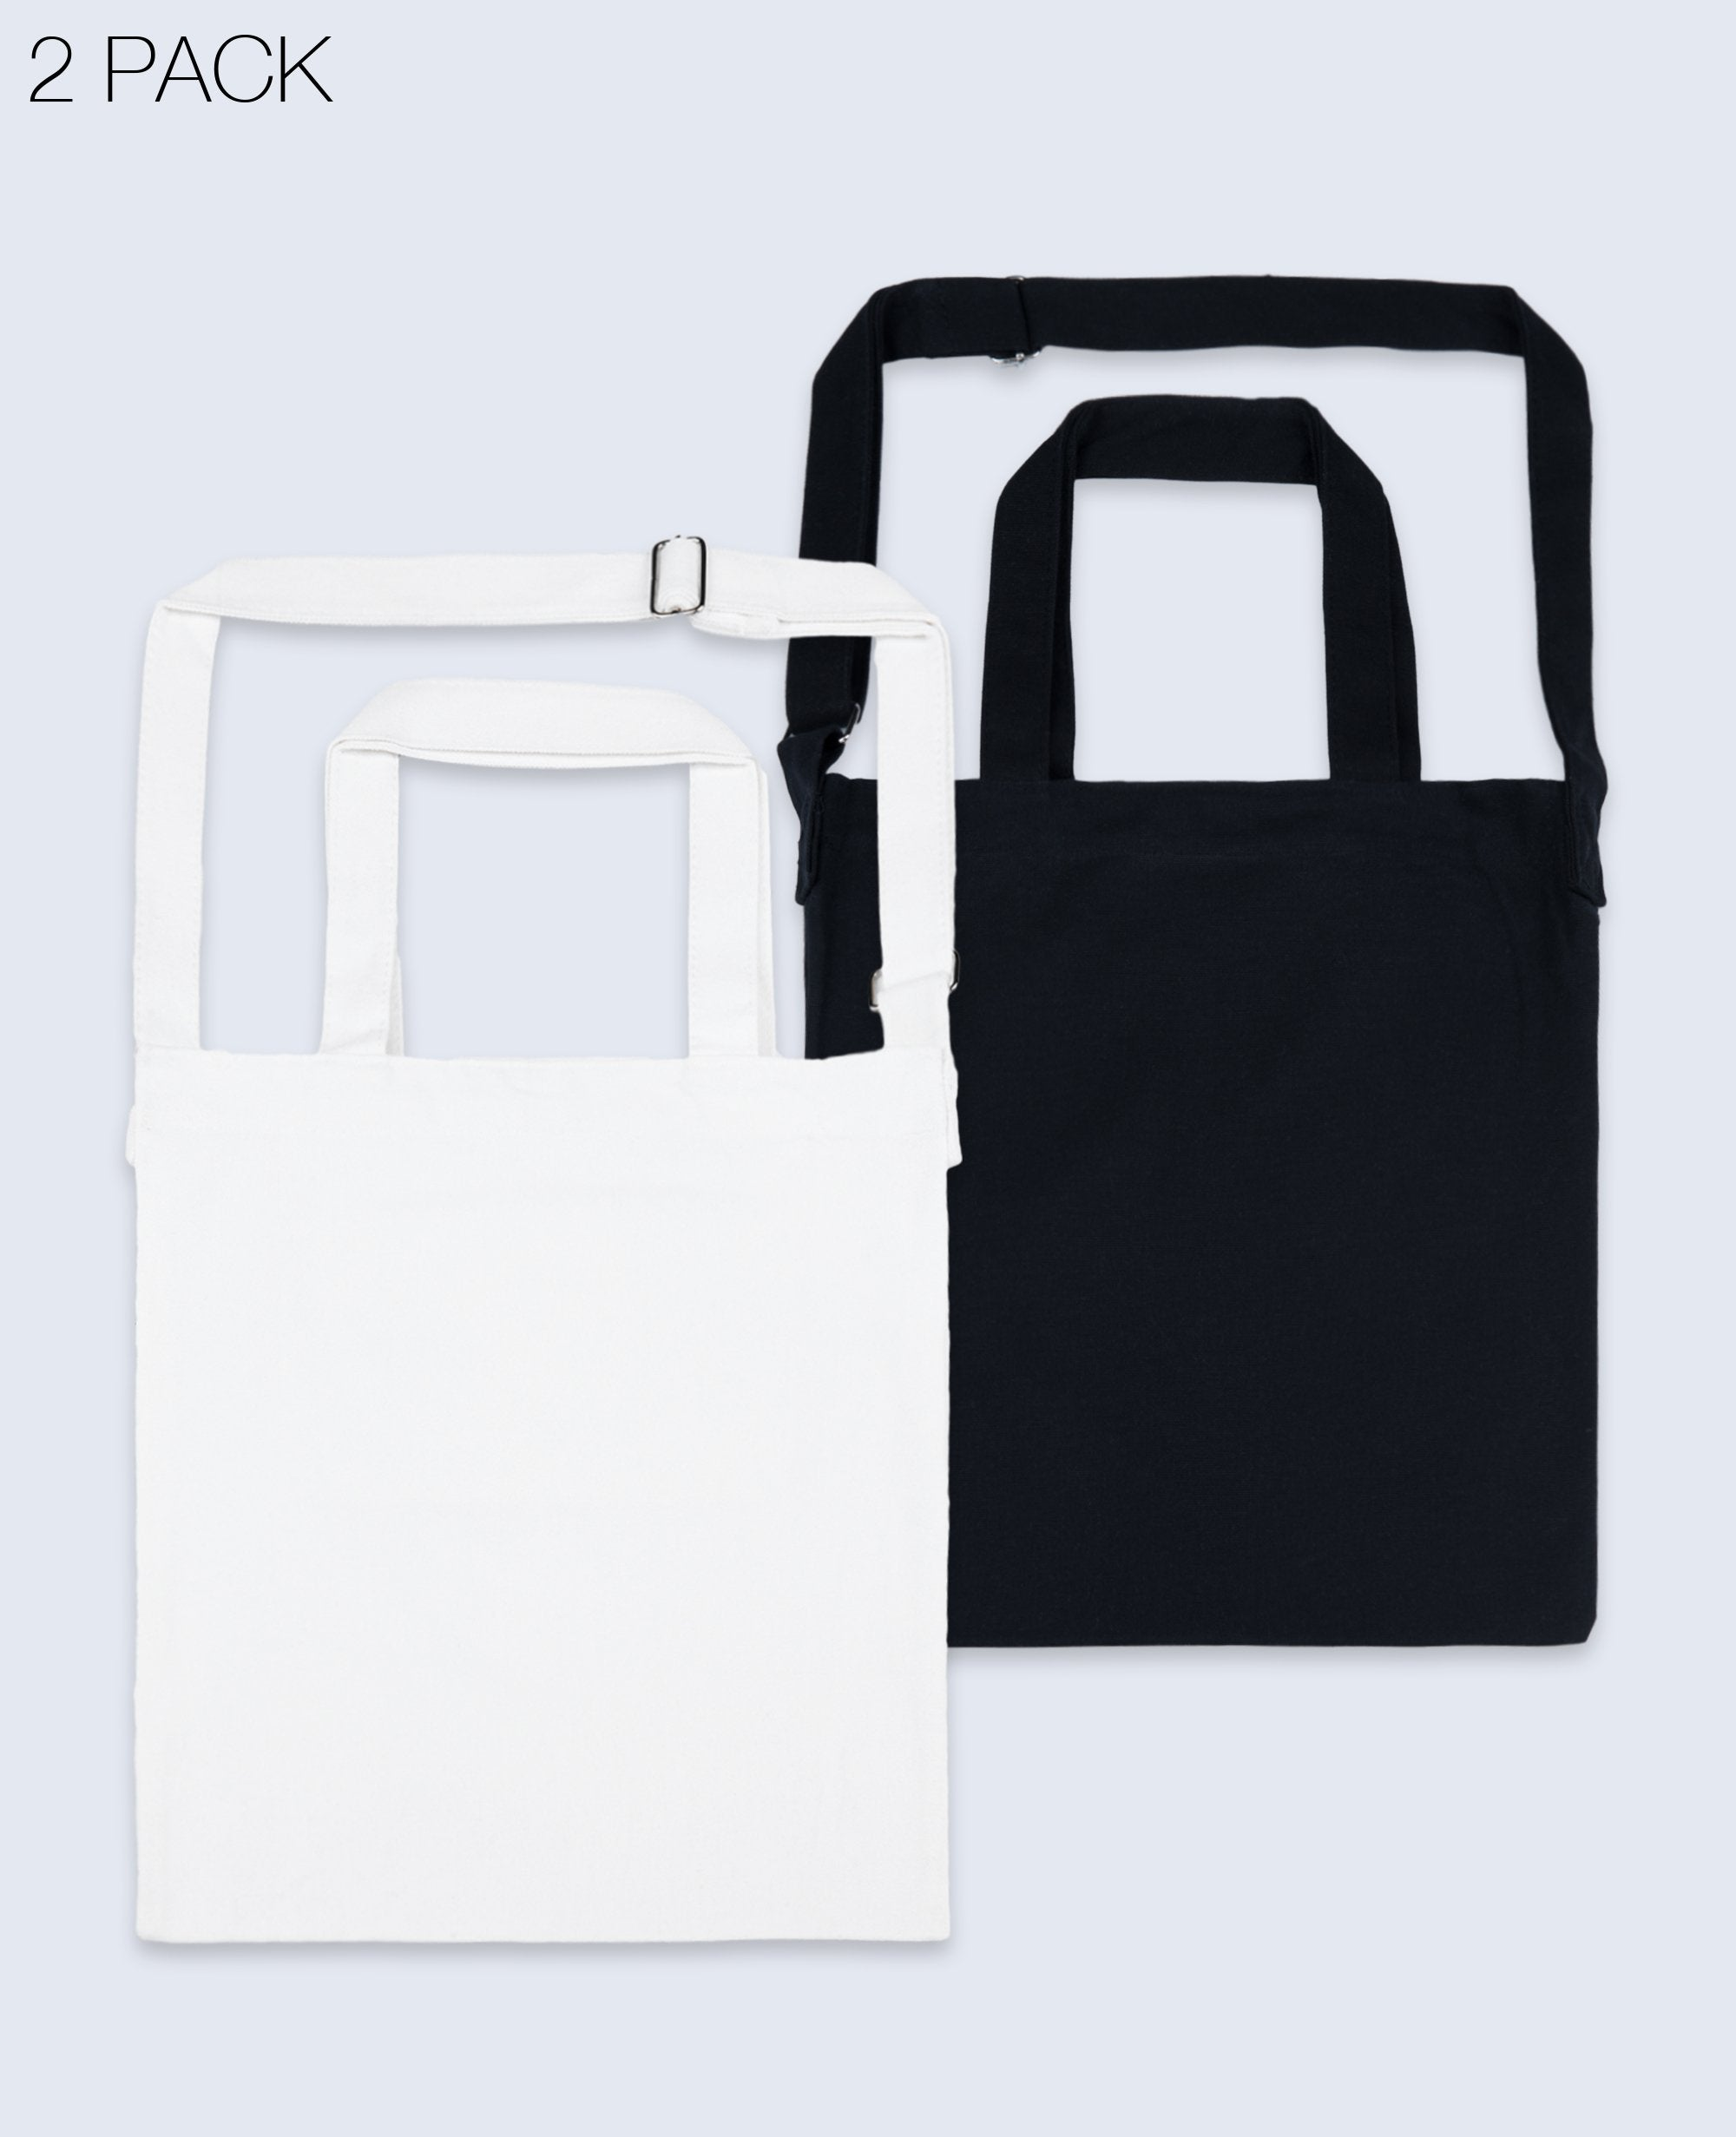 One shoulder Tote bag in Black / White 2 pack - Tote bags - BRANMA - BRANMA